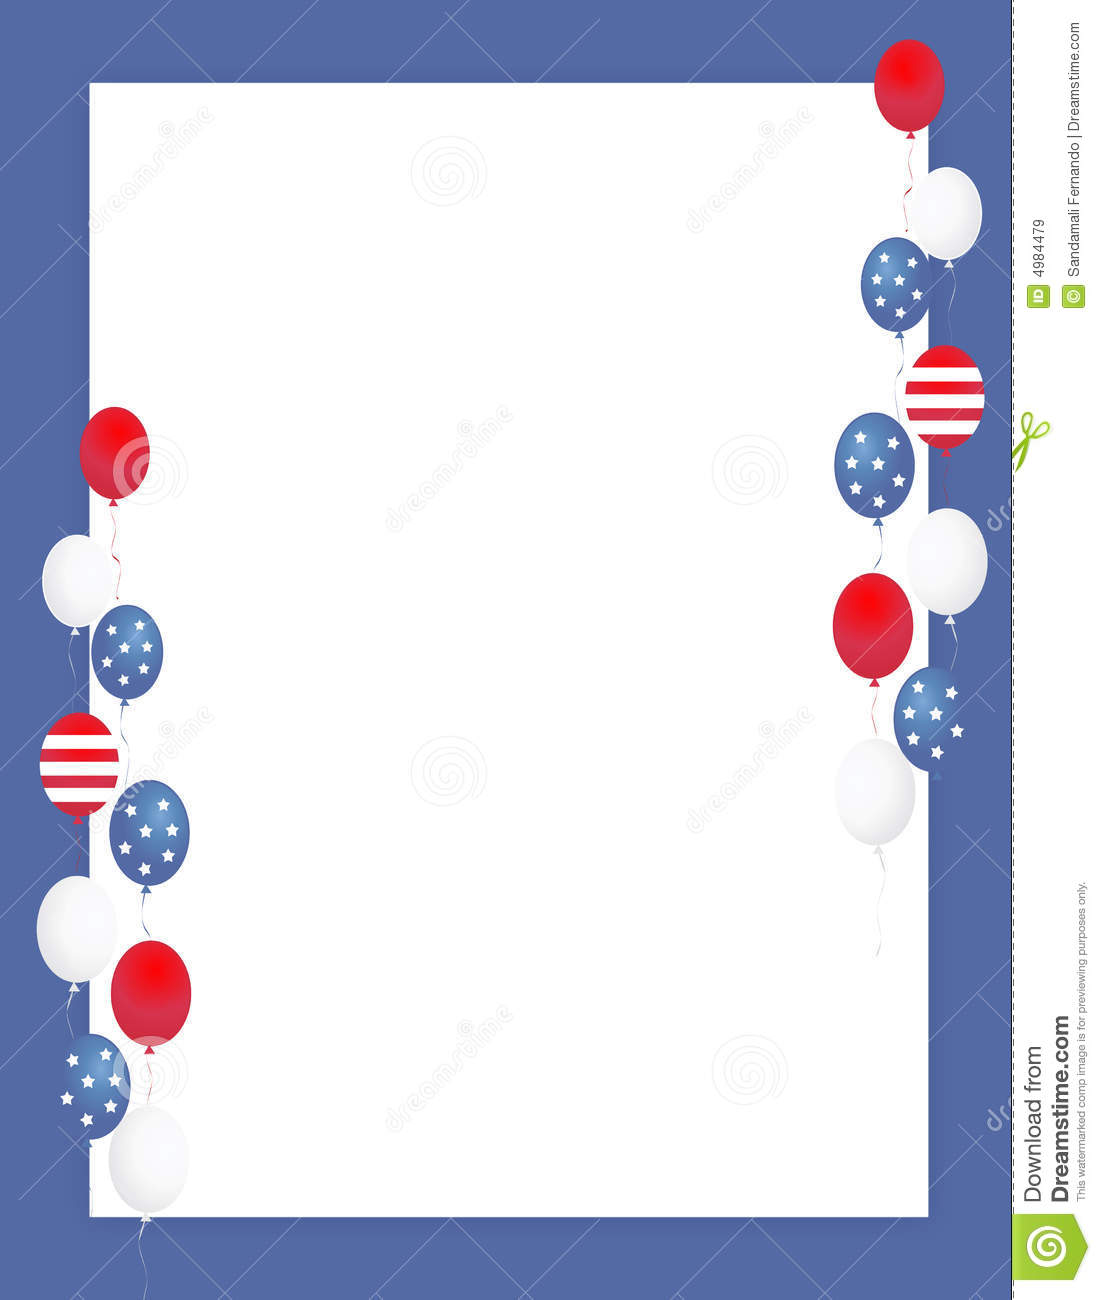 Blue and red patriotic stars and stripes page border frame design - Patriotic Border Balloons Royalty Free Stock Images